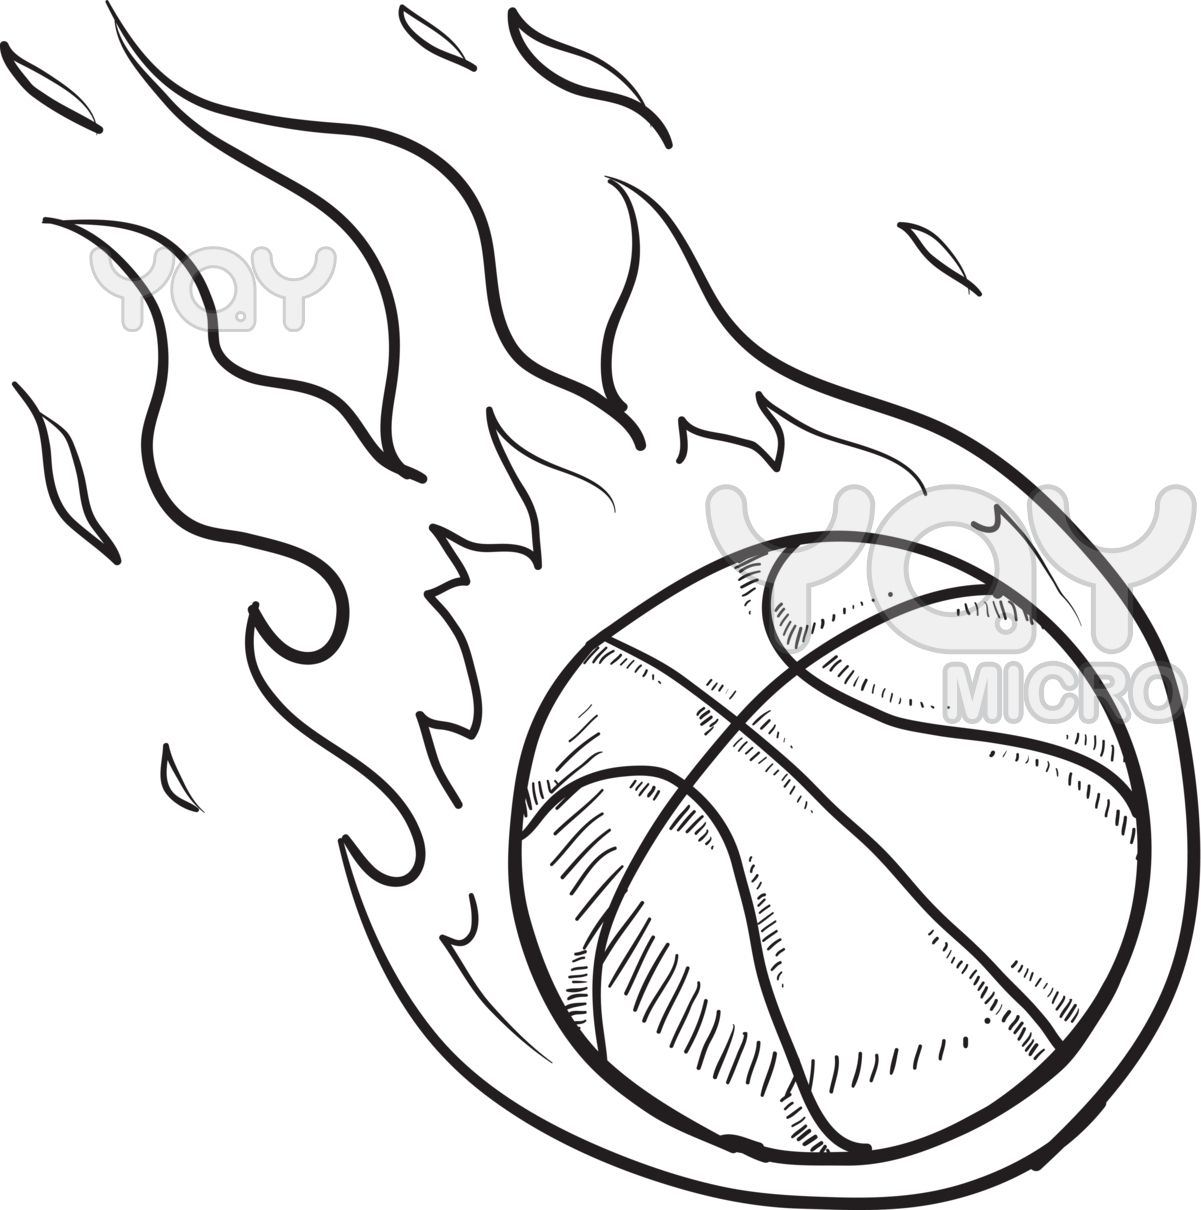 Real Basketball Coloring Pages. Basketball Coloring Page Pages  Education Pinterest Clip art